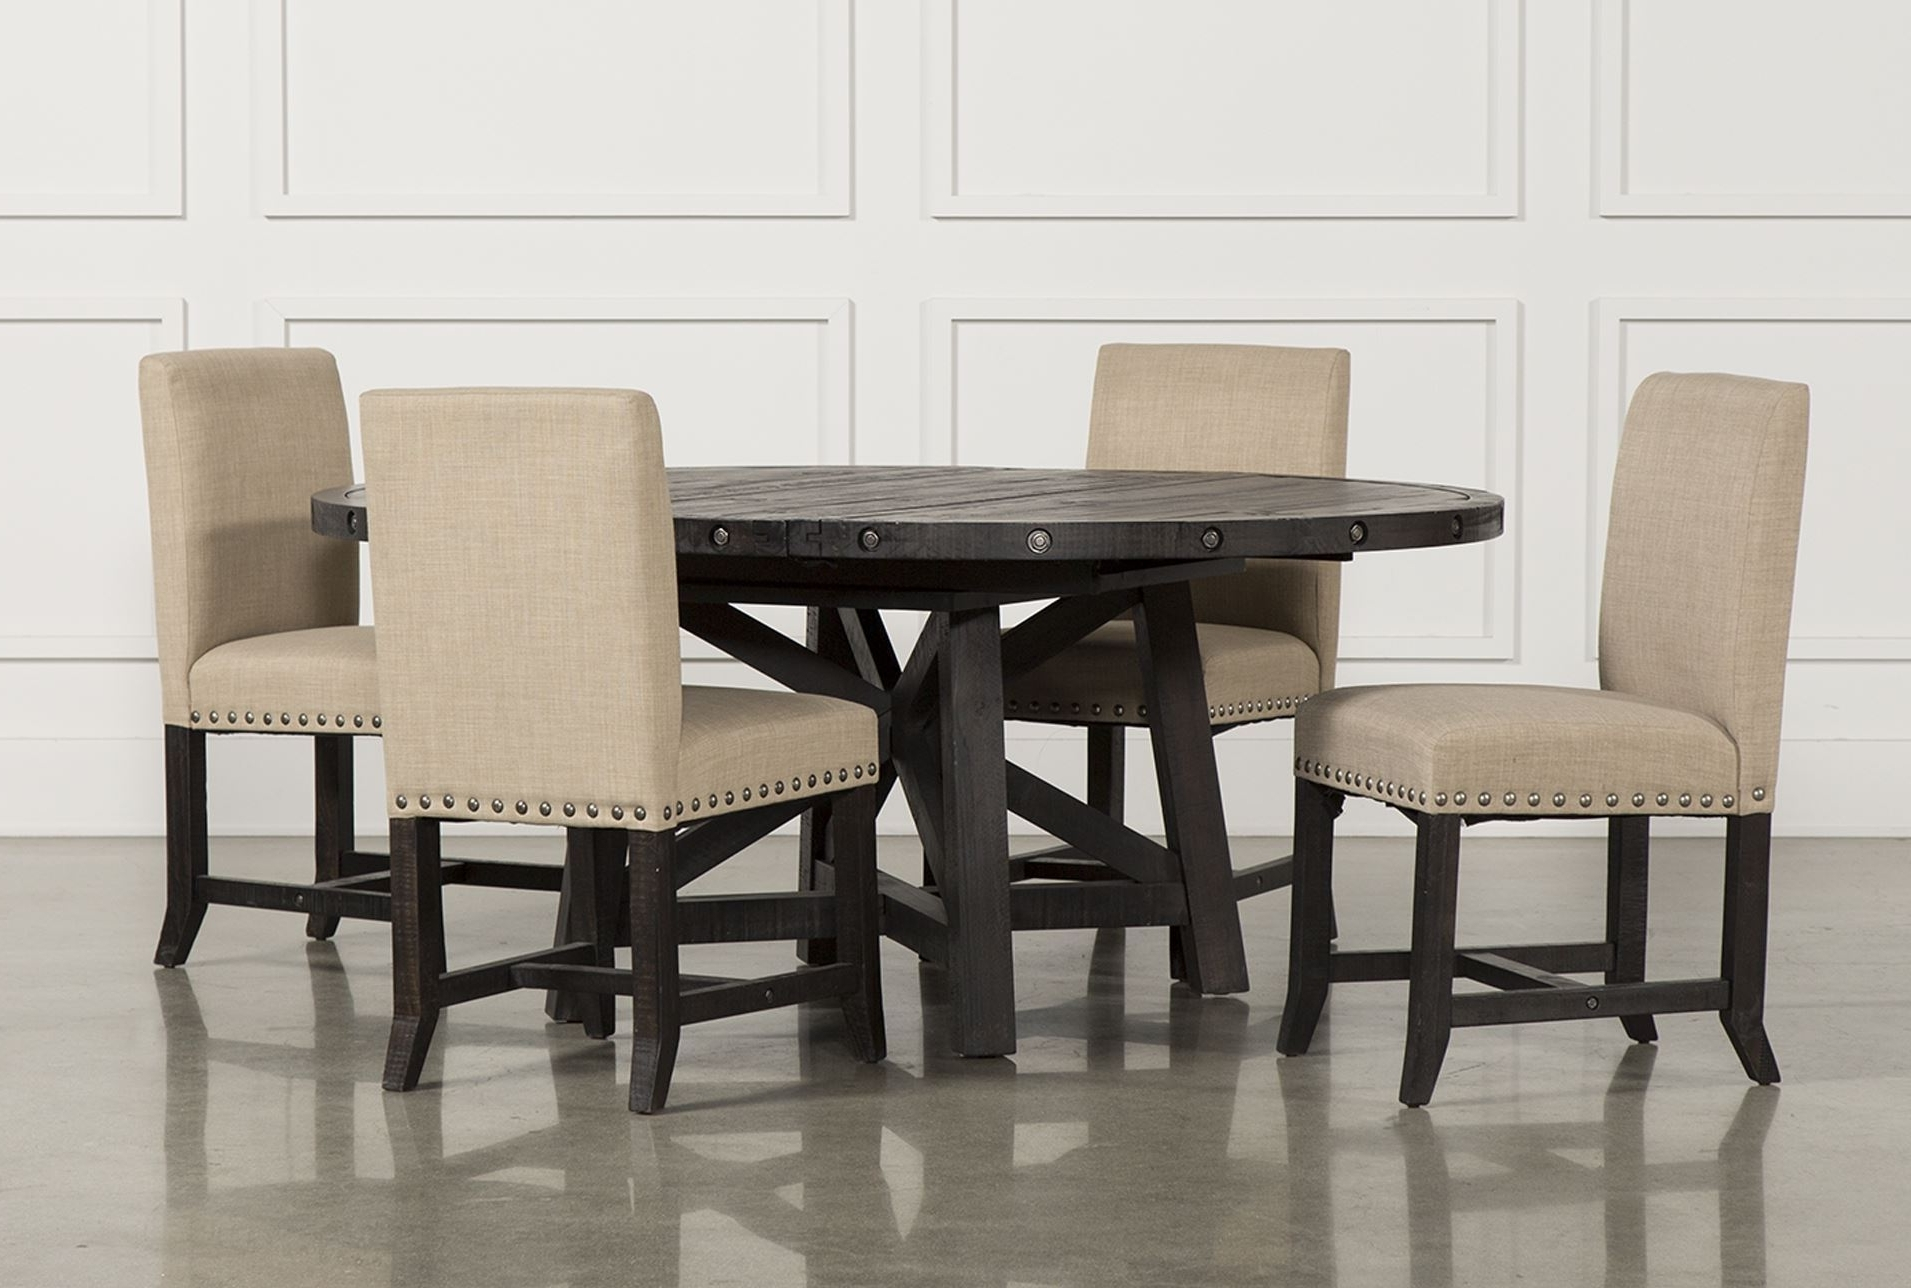 Dining Tables. Remarkable Living Spaces Dining Tables: Jaxon 5 Piece In 2018 Chapleau Ii 7 Piece Extension Dining Tables With Side Chairs (Gallery 24 of 25)